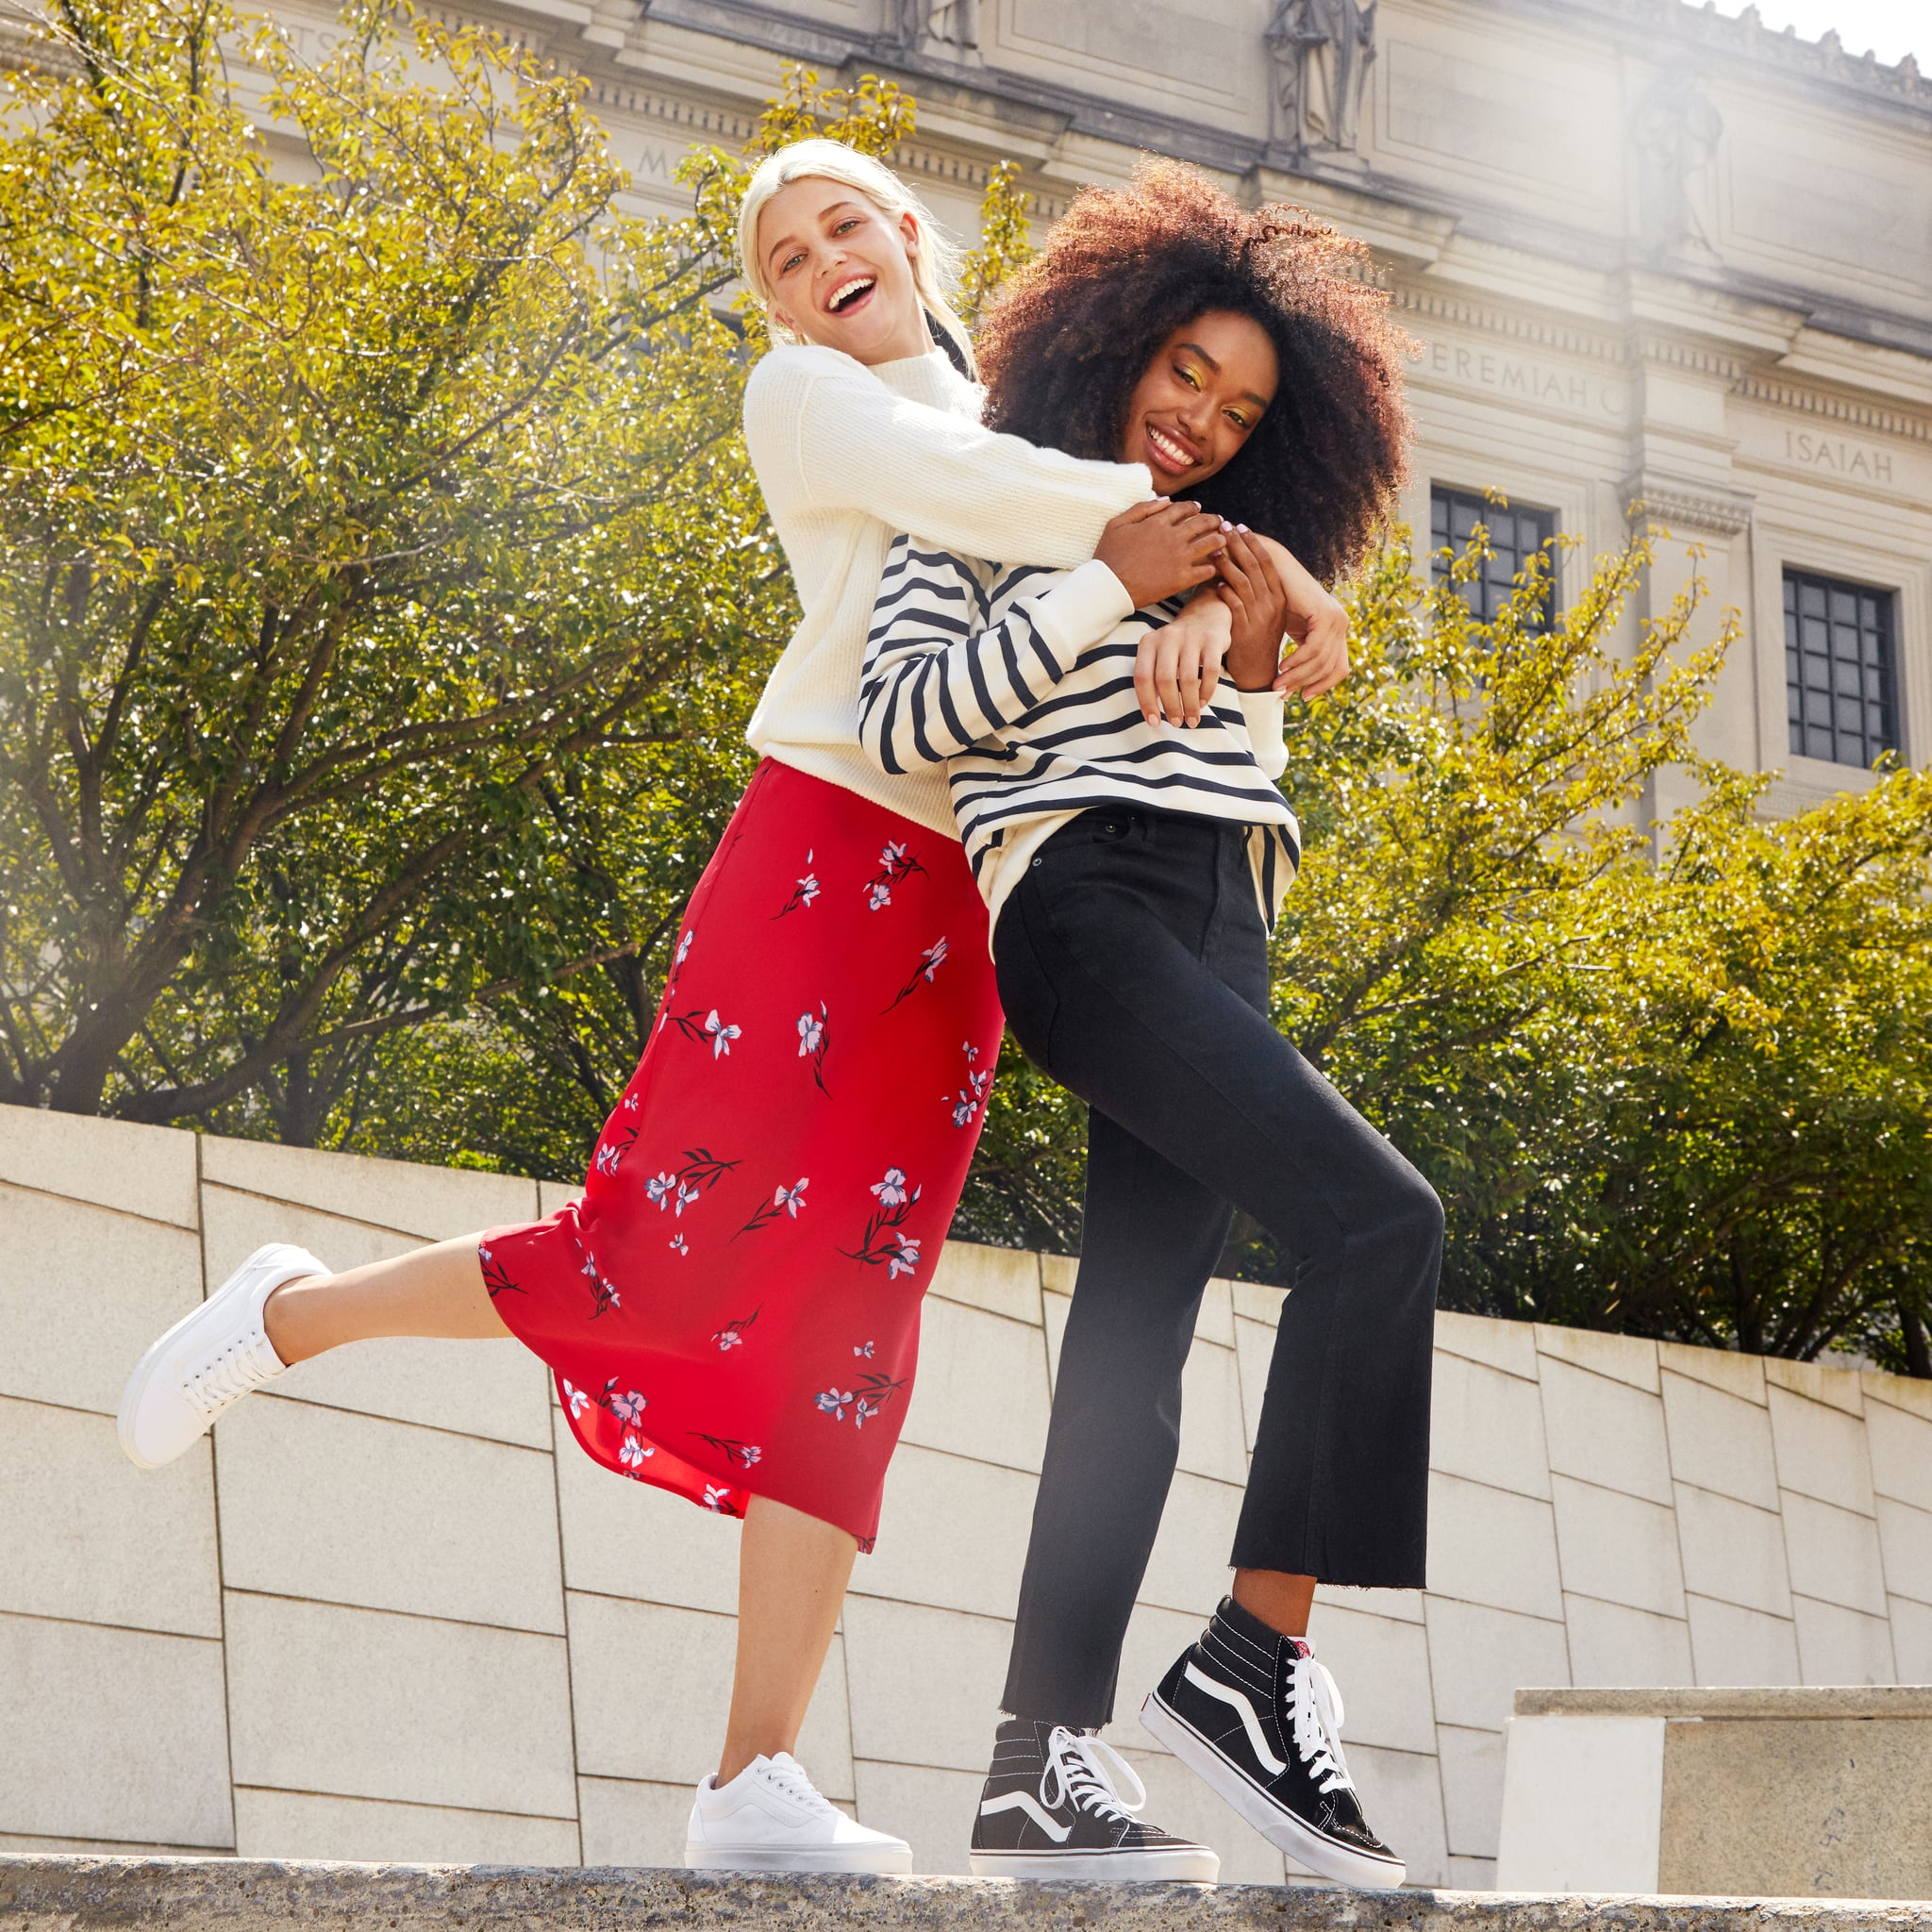 adidas Grand Court Sneakers | Cute Fall